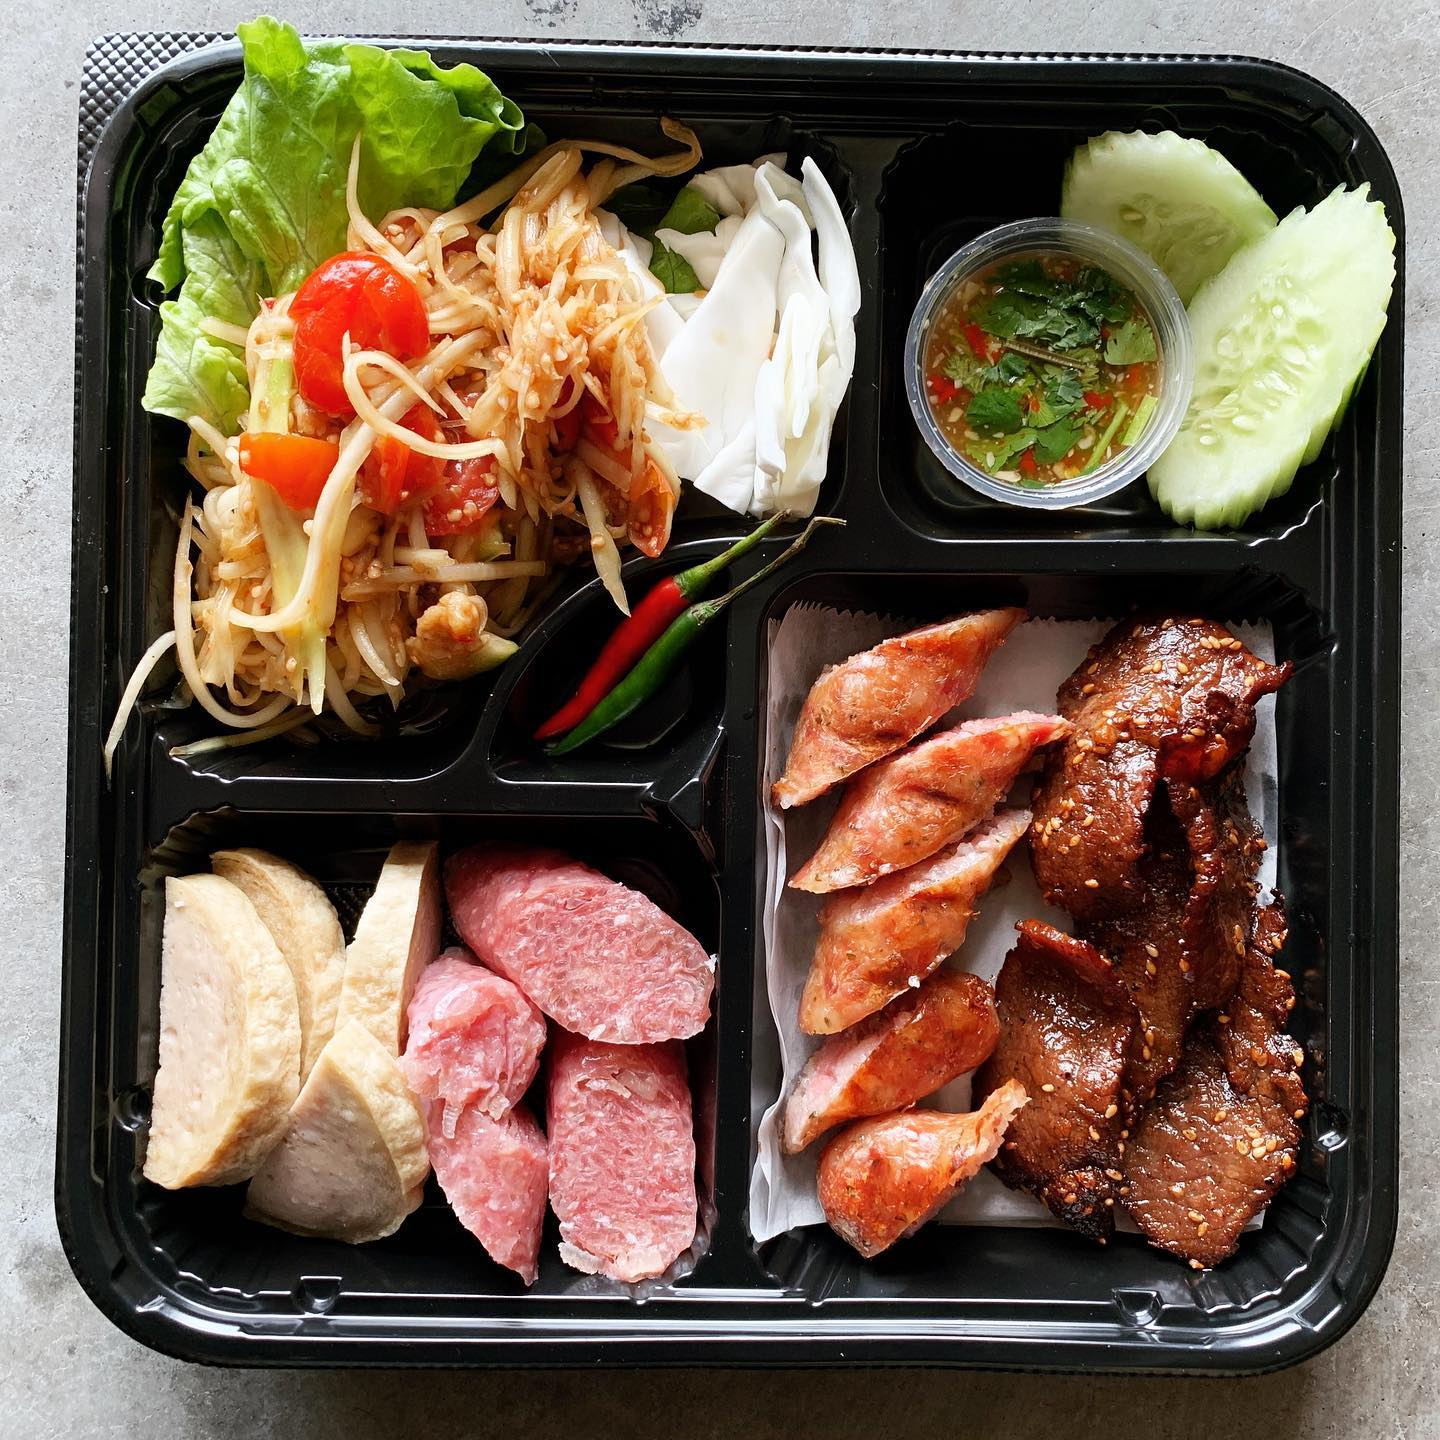 papaya salad, Lao sausage, beef jerky, crispy pork belly, and pickled cucumbers in a to-go container at Snackboxe Bistro in Doraville, GA